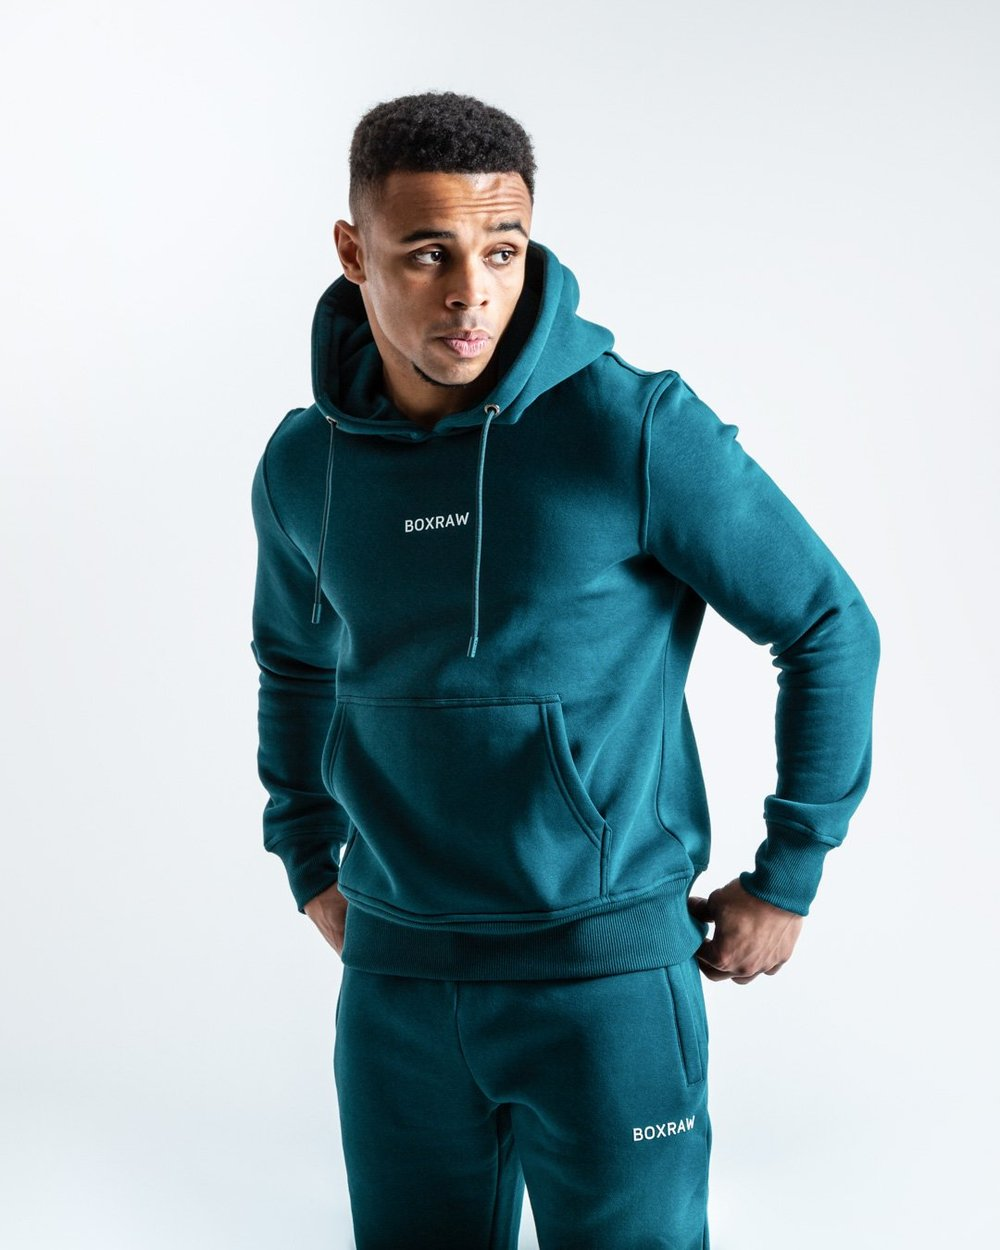 JOHNSON HOODIE - GREEN - Pandemic Fight Gear Inc.